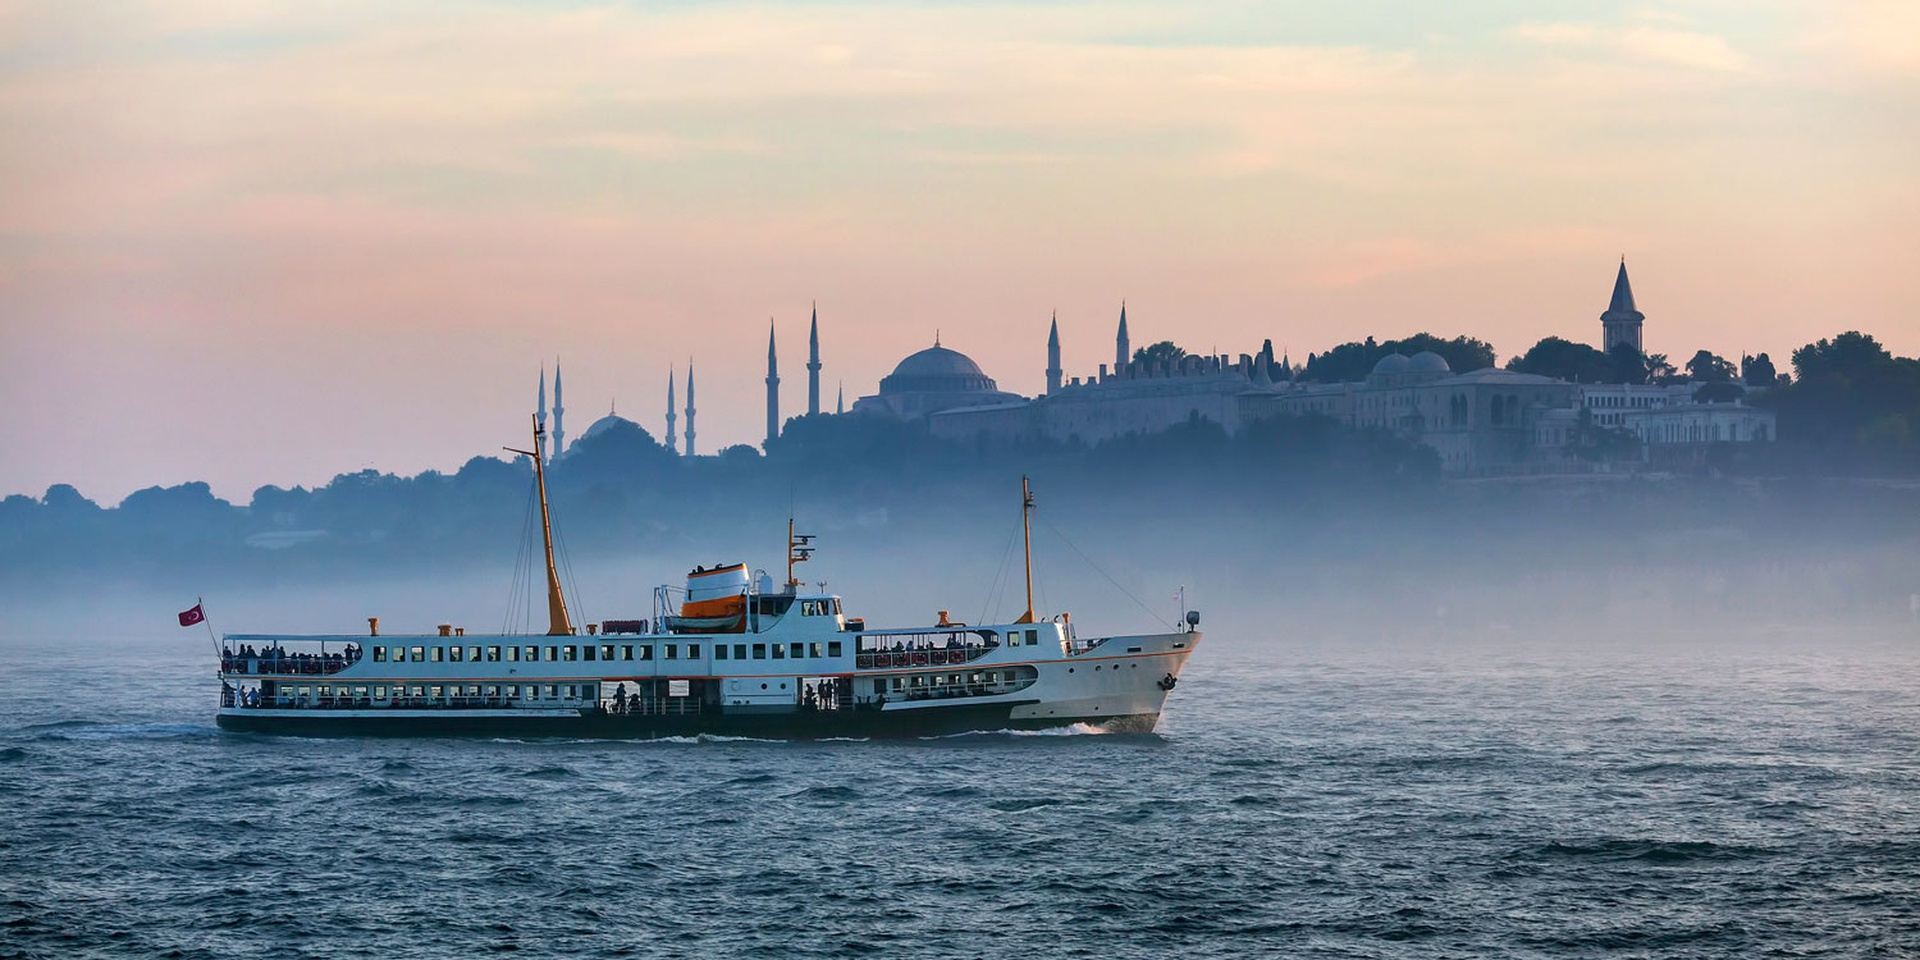 Good times and a great cruise: Bosphorus Strait